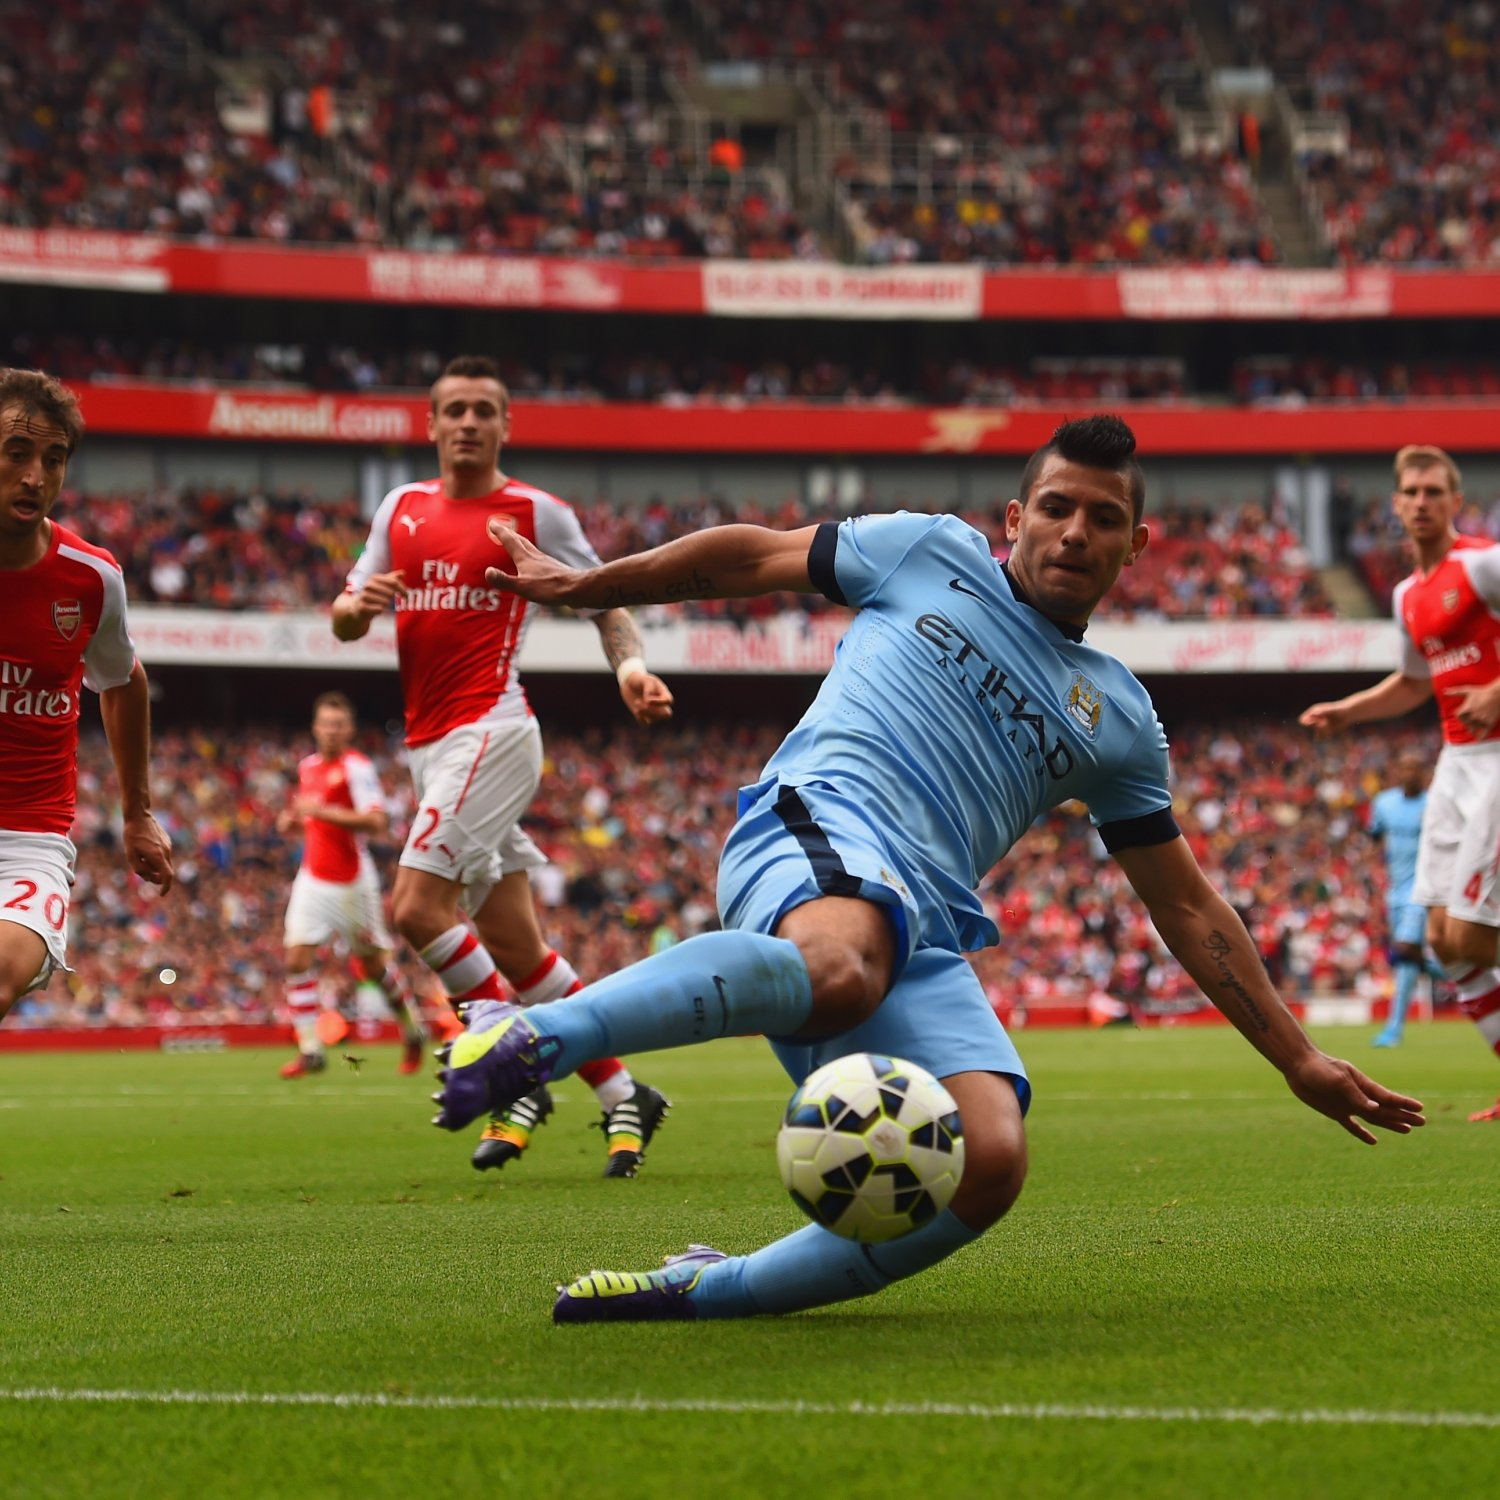 Psg Vs Manchester City Live Score Highlights From: Manchester City Vs. Arsenal: Live Score, Highlights From